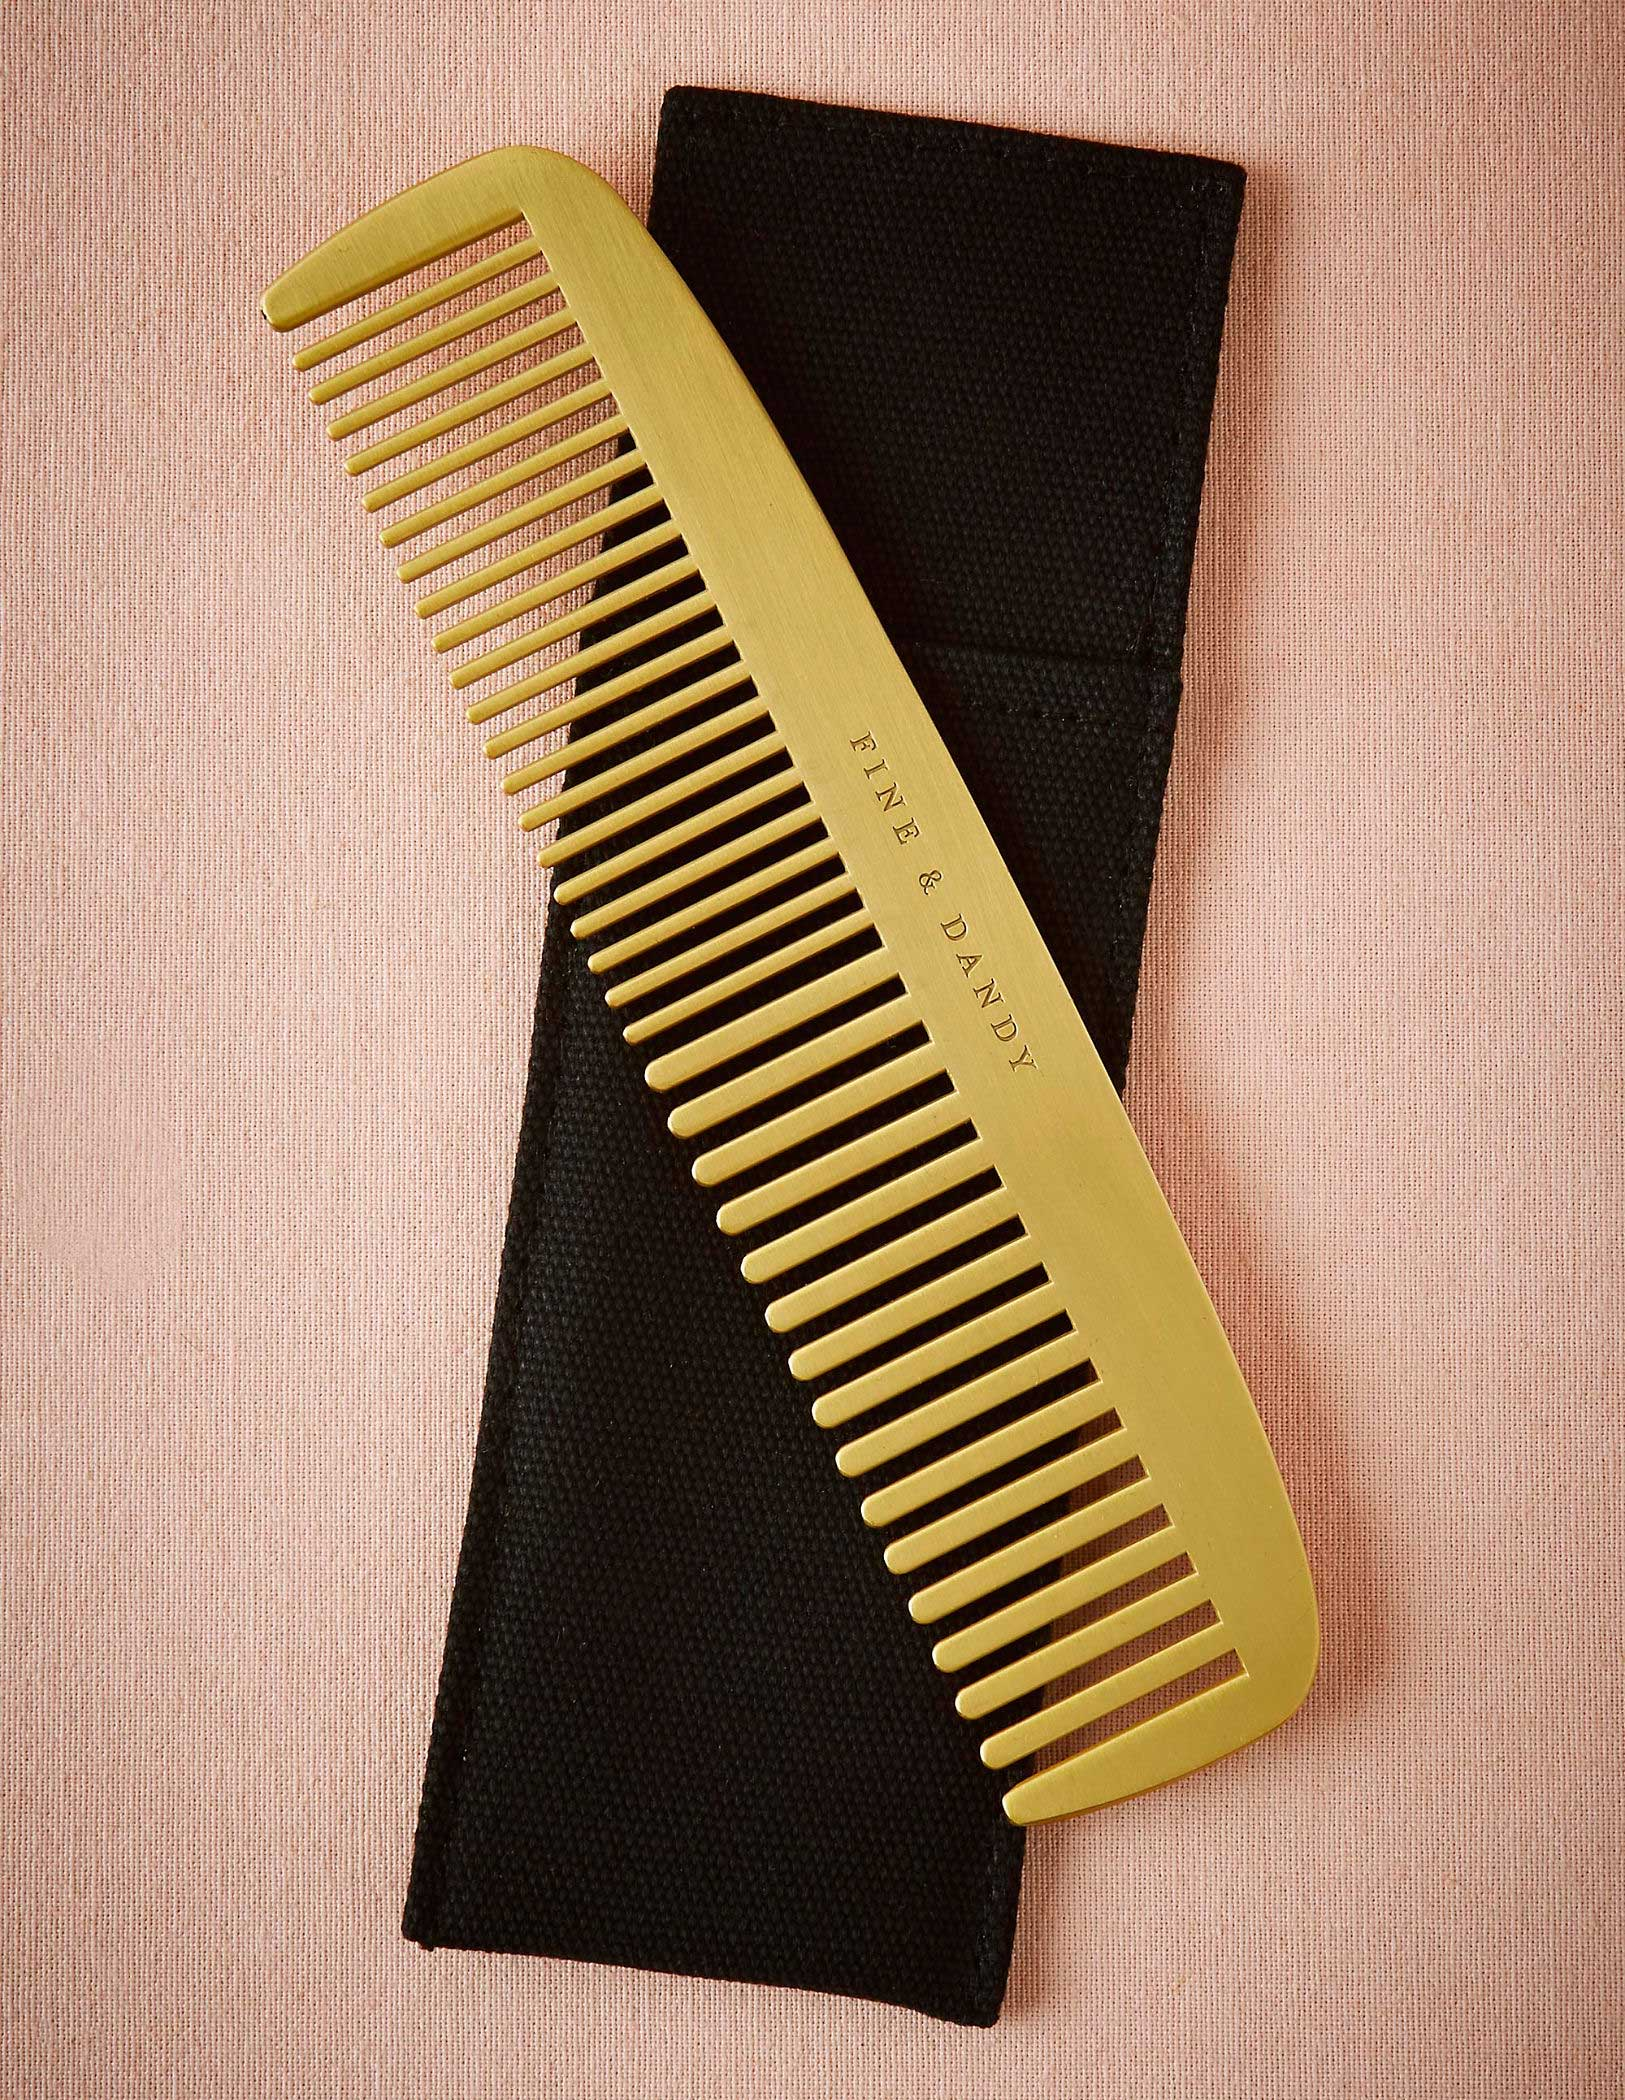 Gold fine and dandy engraved comb with carrying case BHLDN gift idea groom men groomsman groomsmen